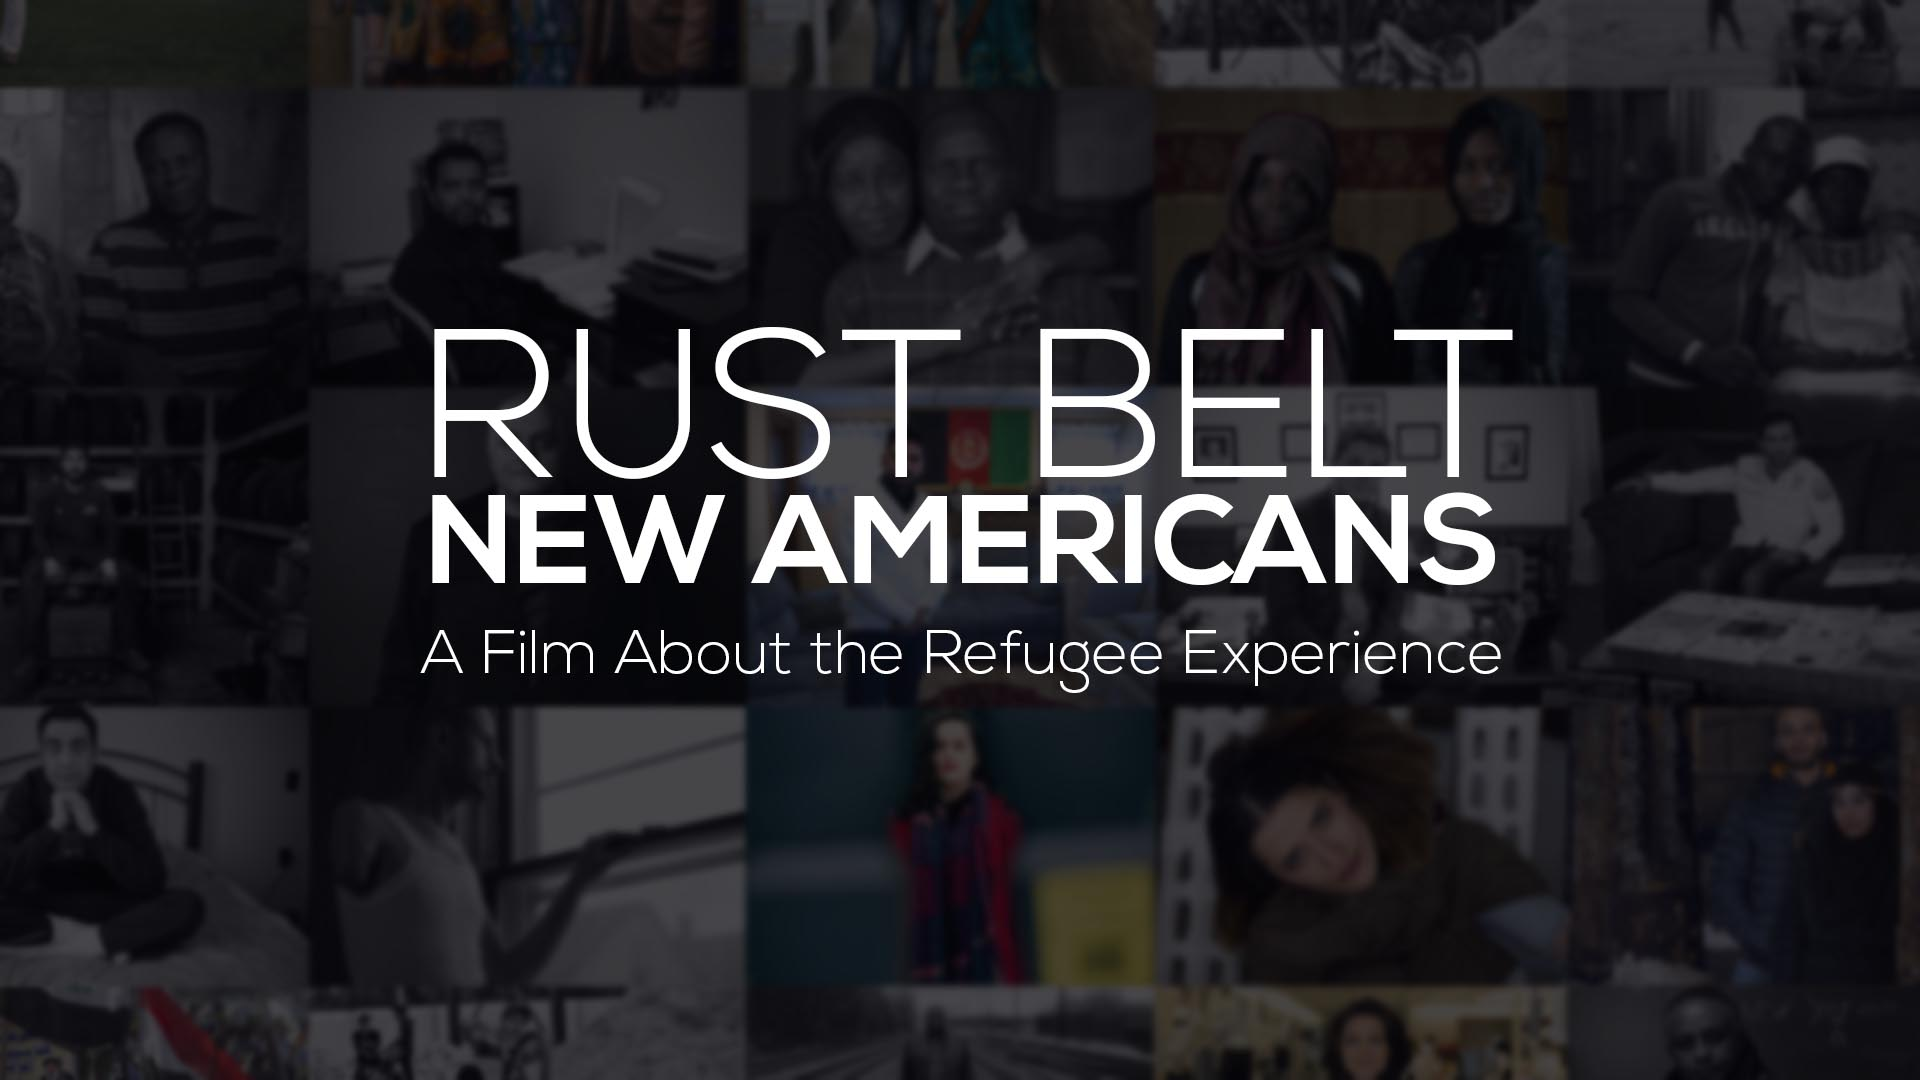 The film's mission is to break down prejudices and stereotypes towards refugee and immigrant populations. - By sharing their experiences, it sheds light on the hardships they've faced as well as their personal and family values.